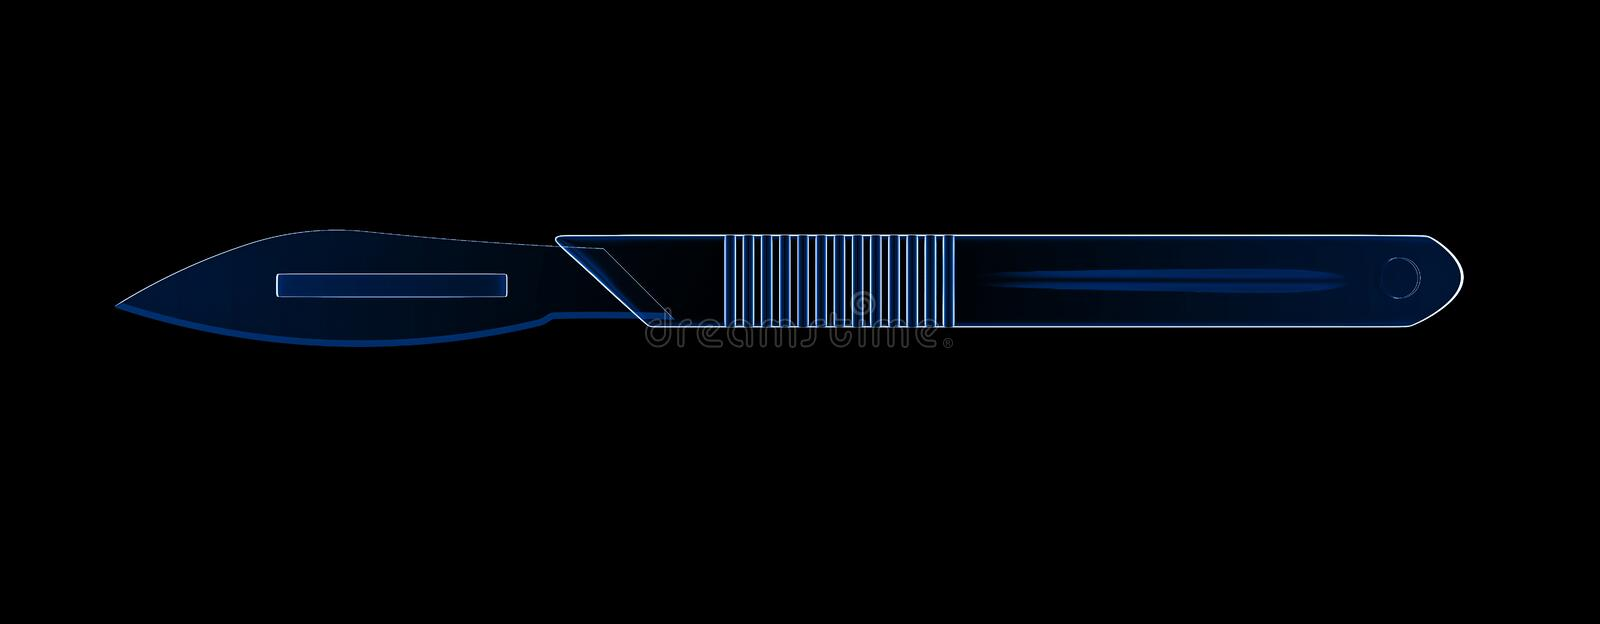 X-ray scalpel or surgery knife. 3d rendering scalpel or surgery knife isolated on black royalty free illustration